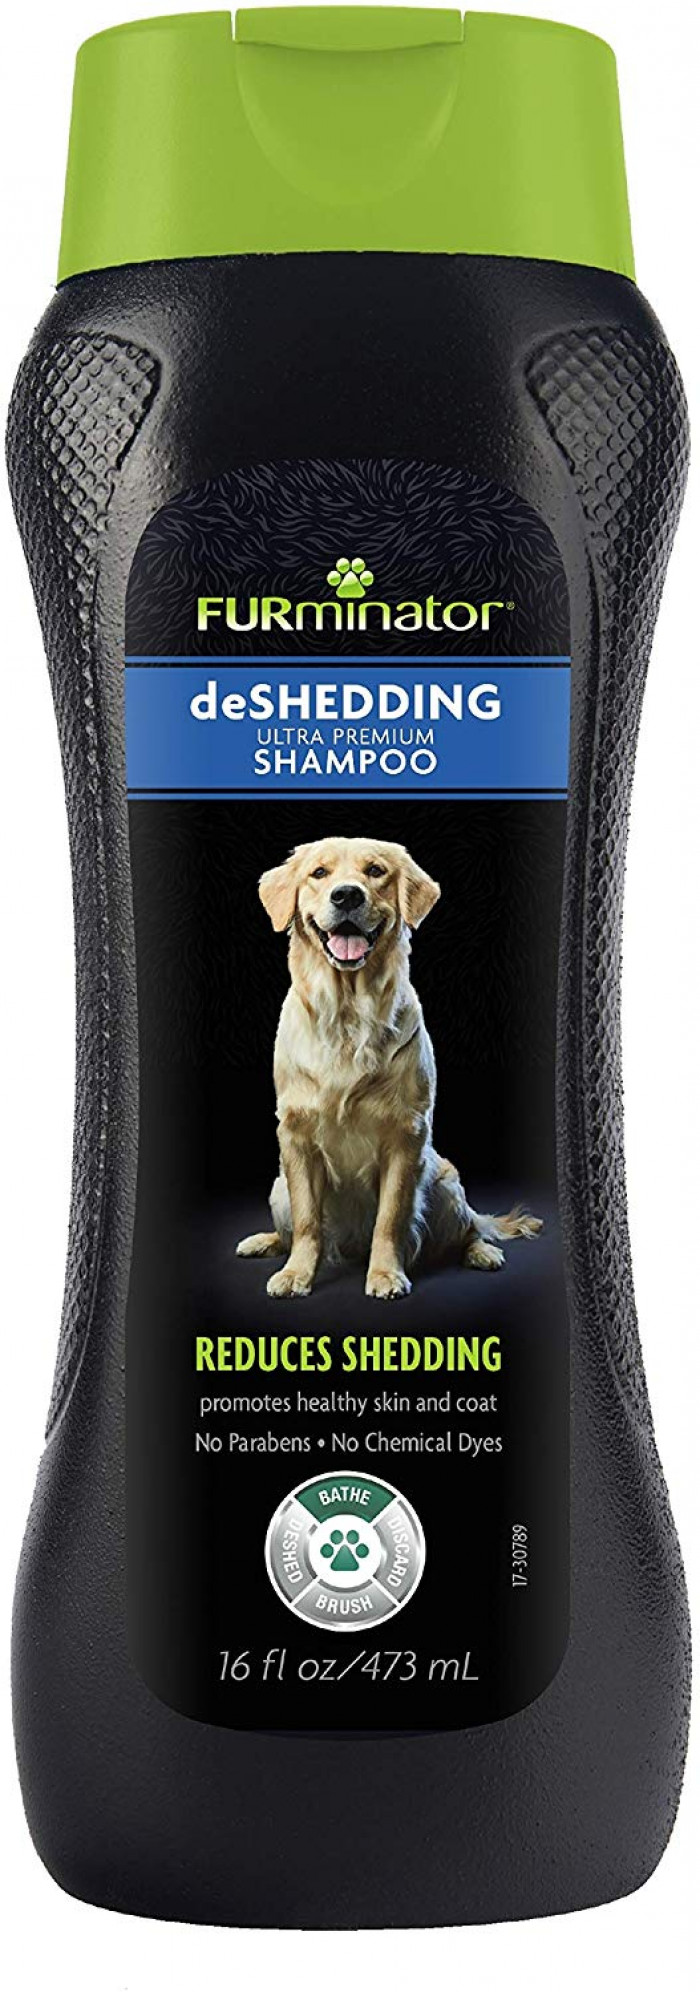 This de-shedding shampoo will help to reduce long term shedding